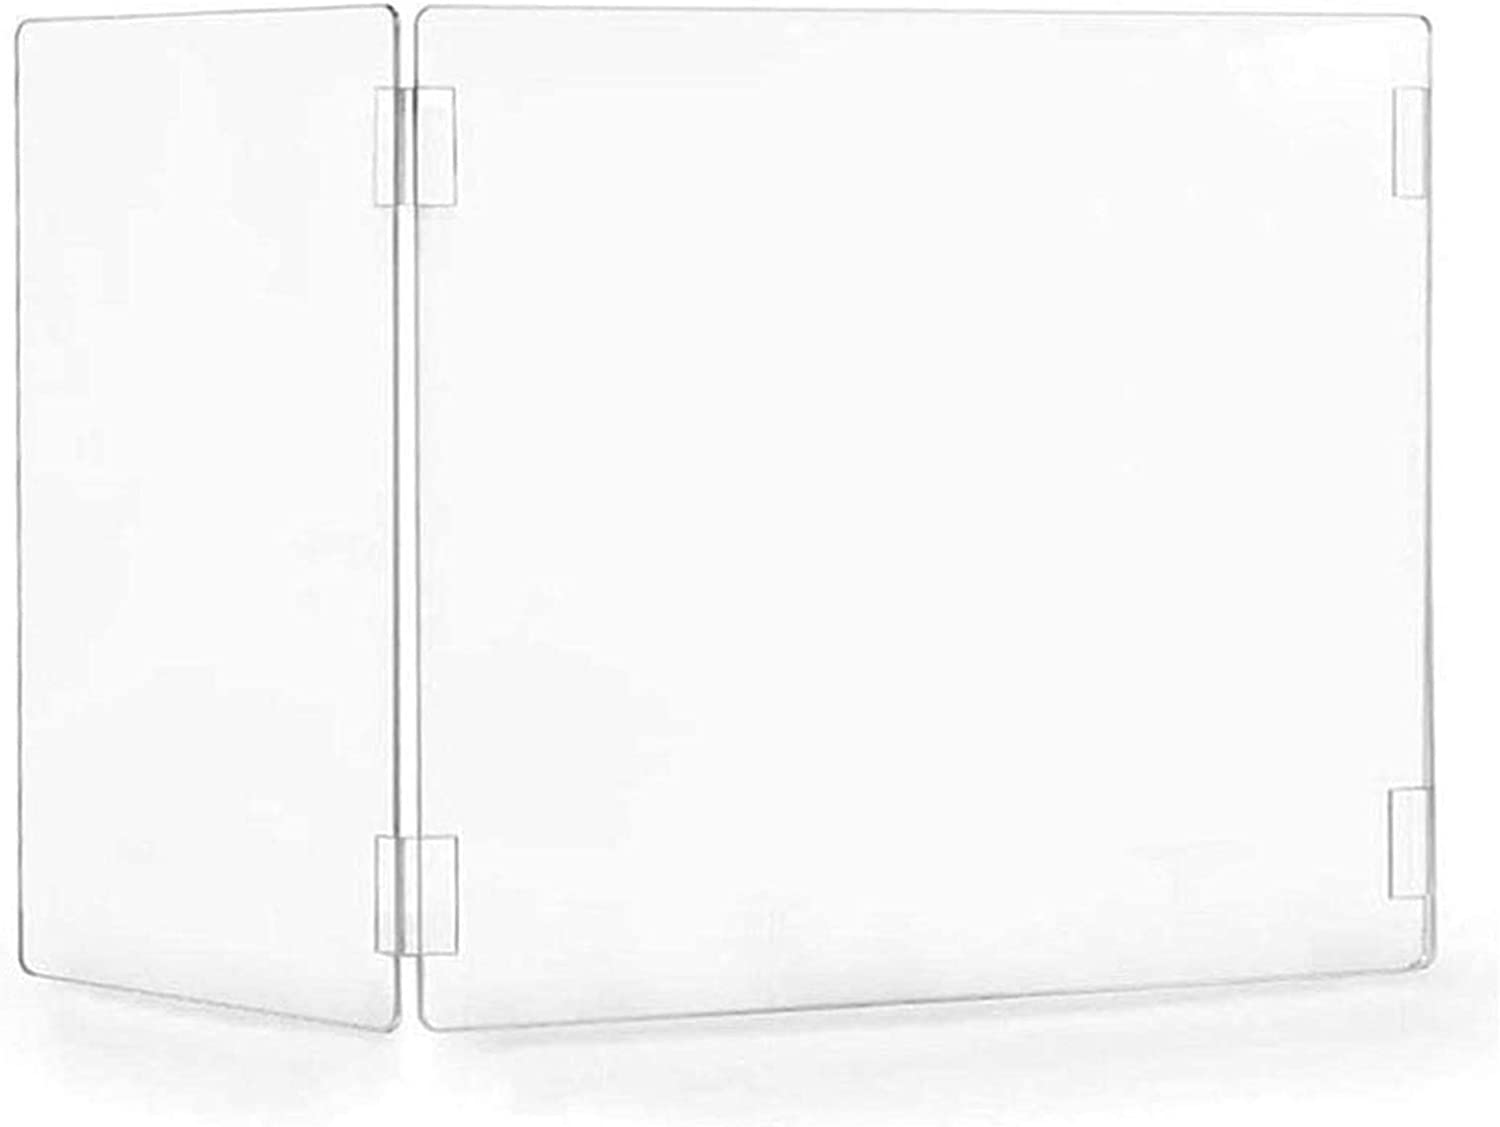 Double Virginia Beach Recommended Mall east Folding Sneeze Guard for Acr Thick 4mm Desk Students